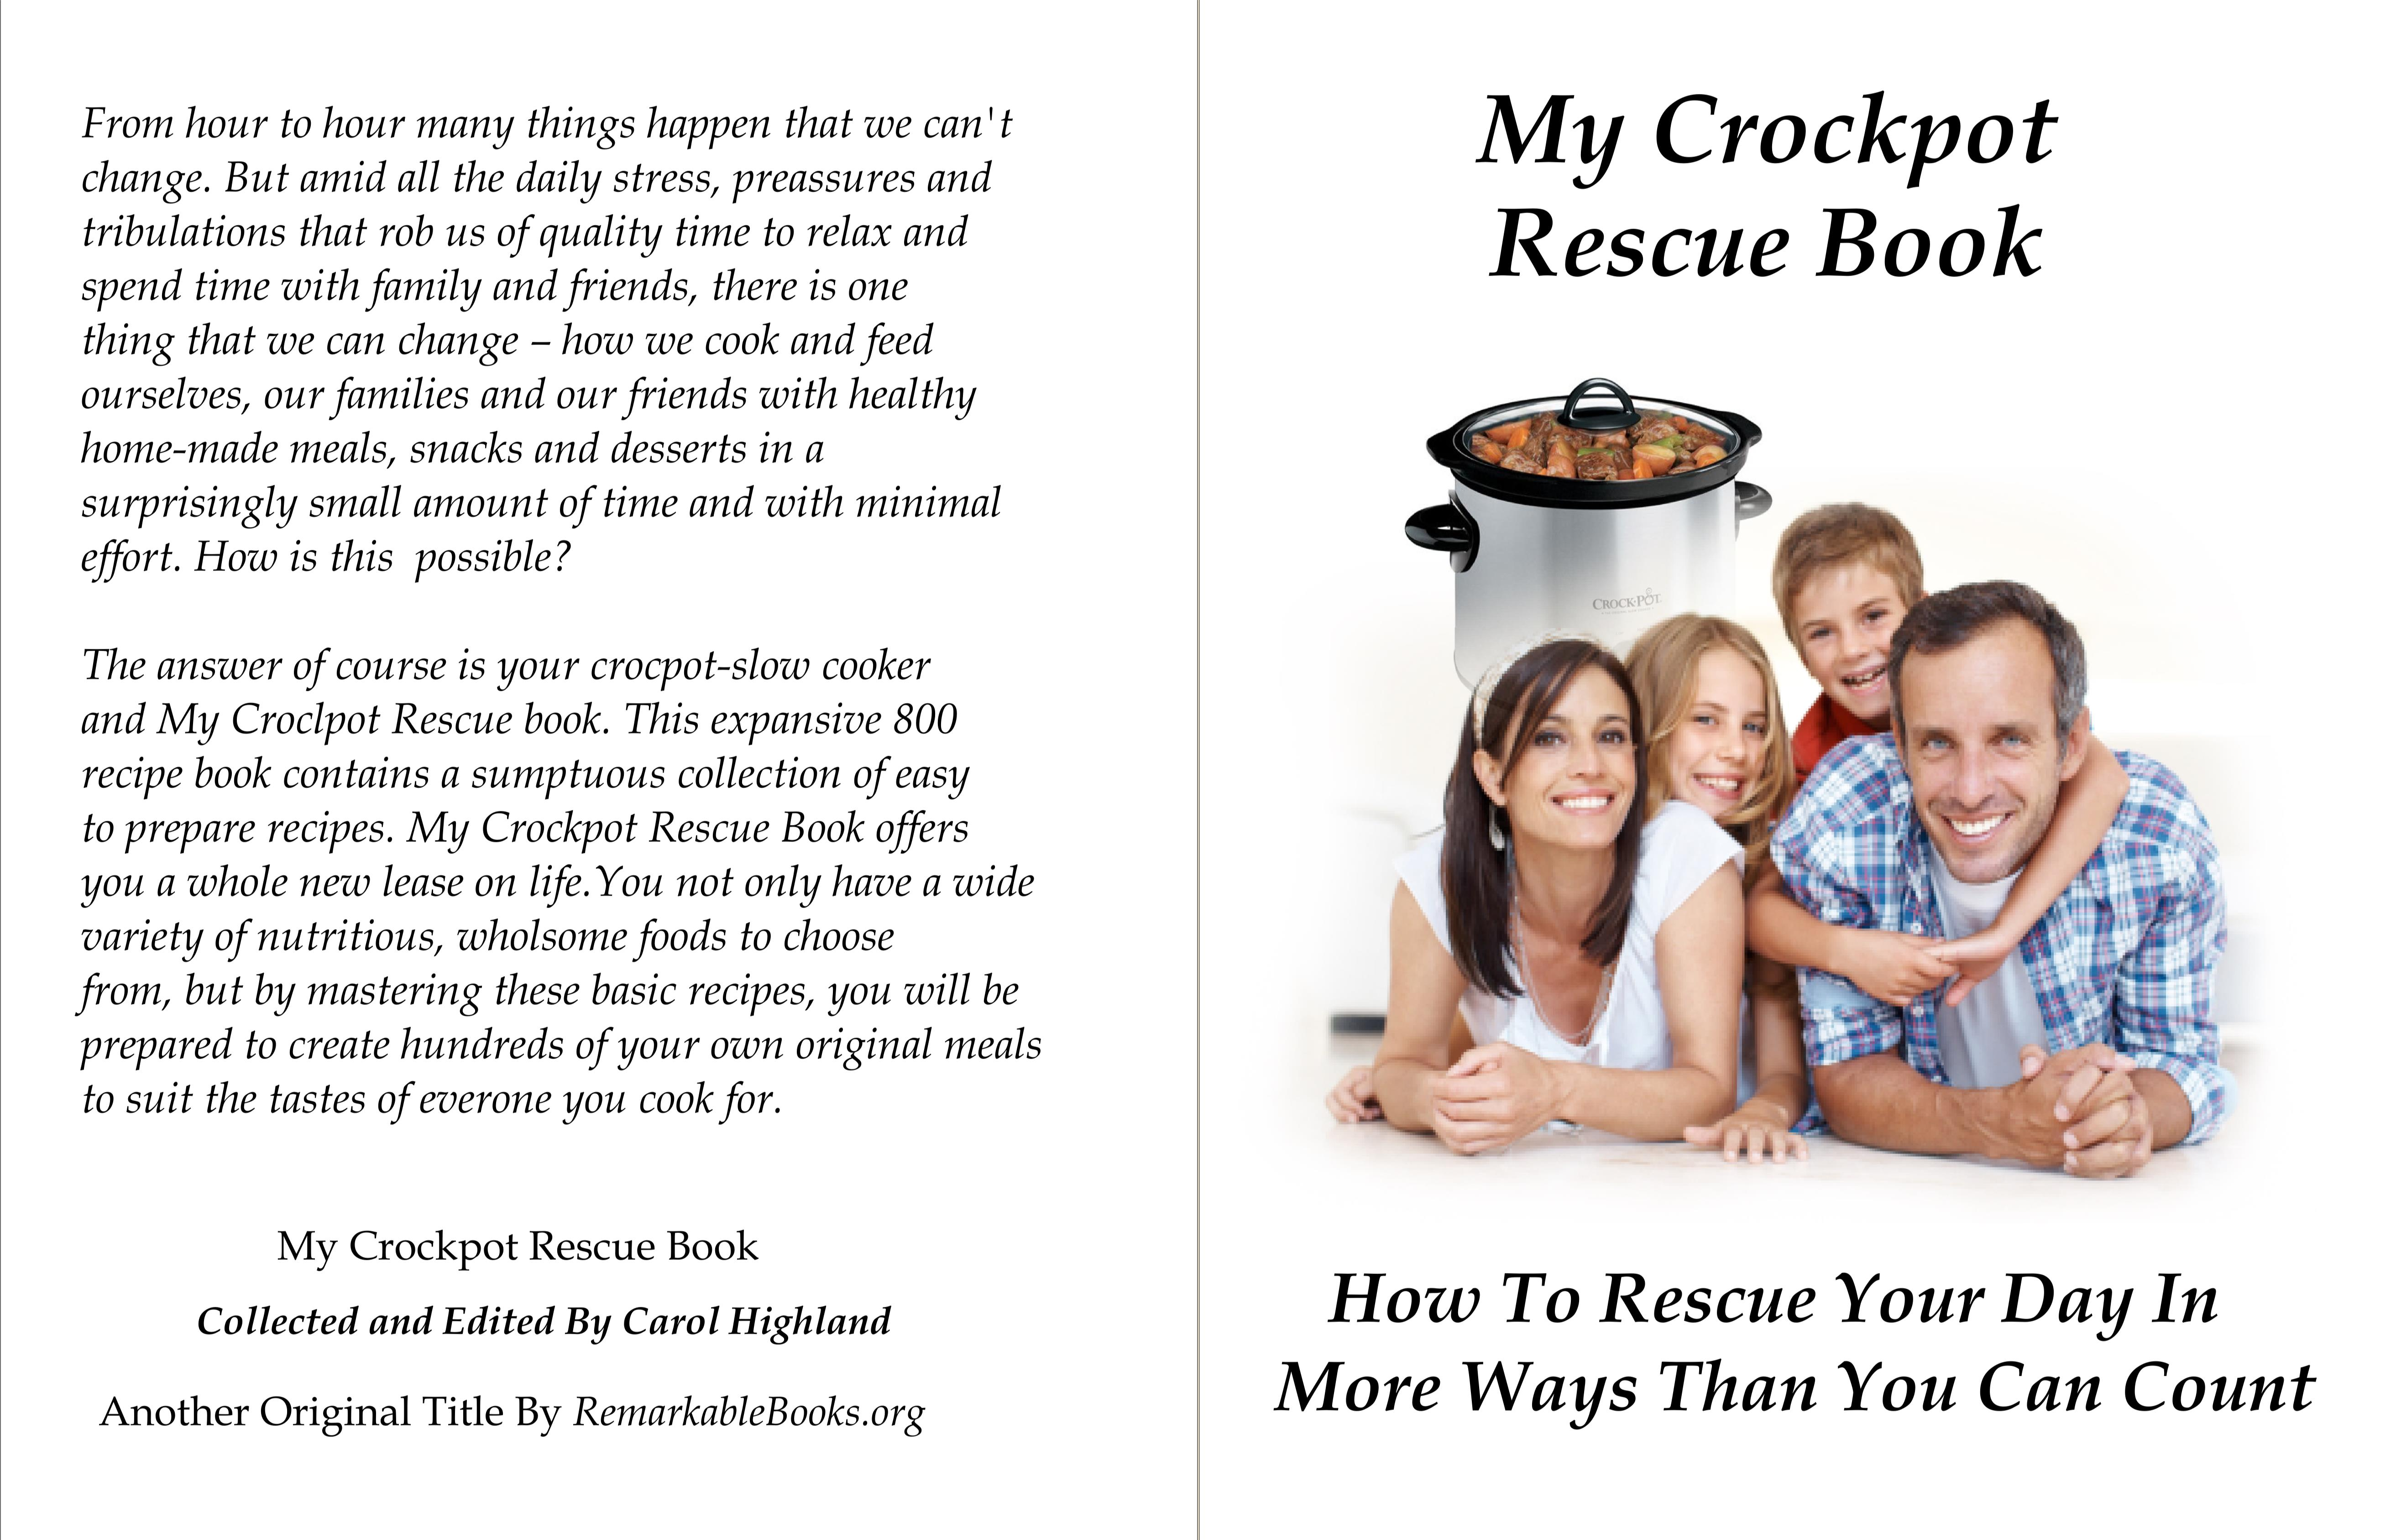 My Crockpot Rescue Book cover image